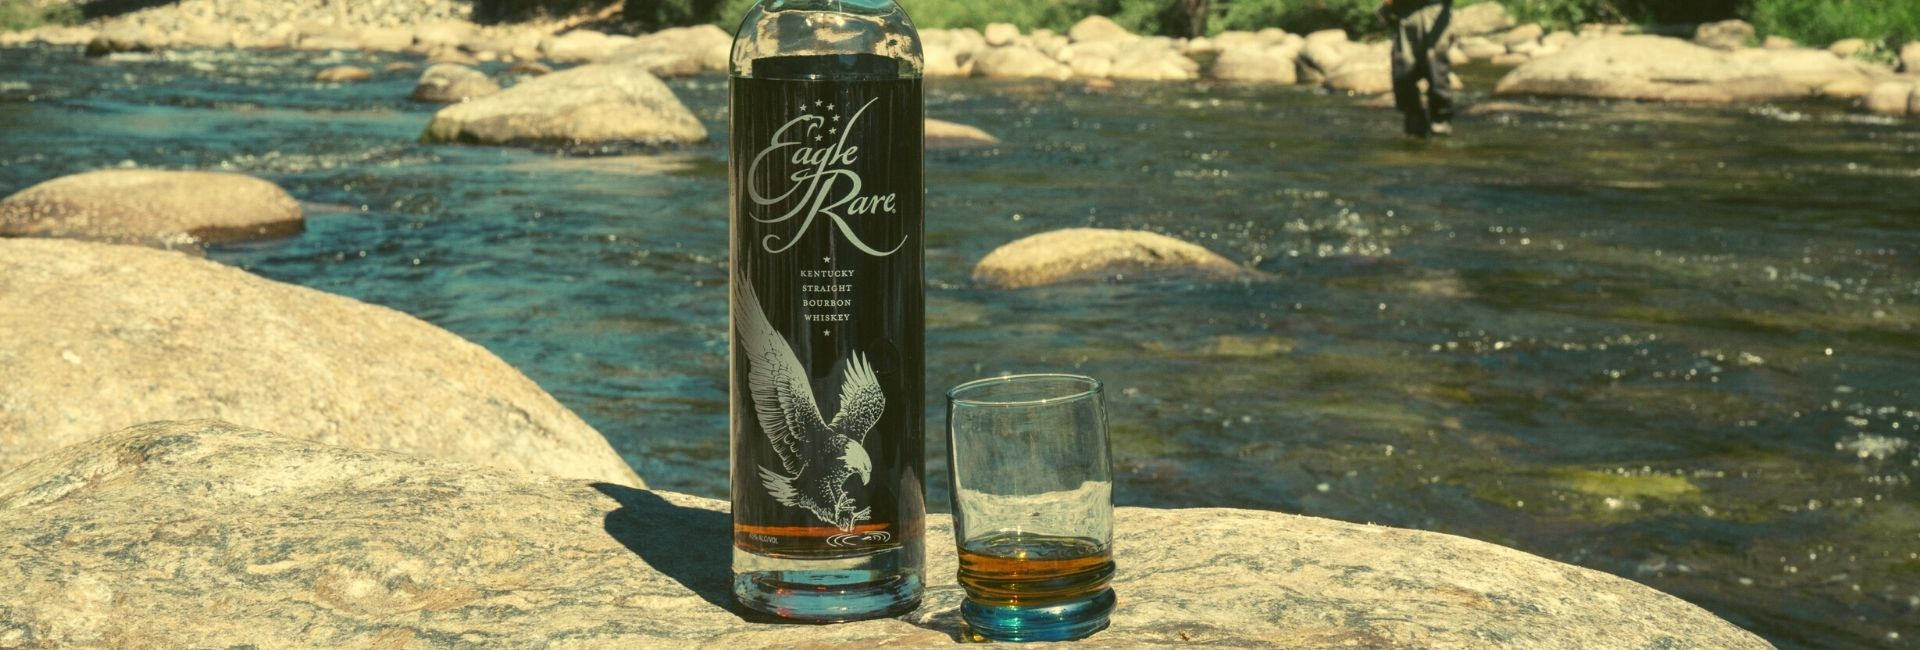 Eagle Rare 10-year Bourbon review